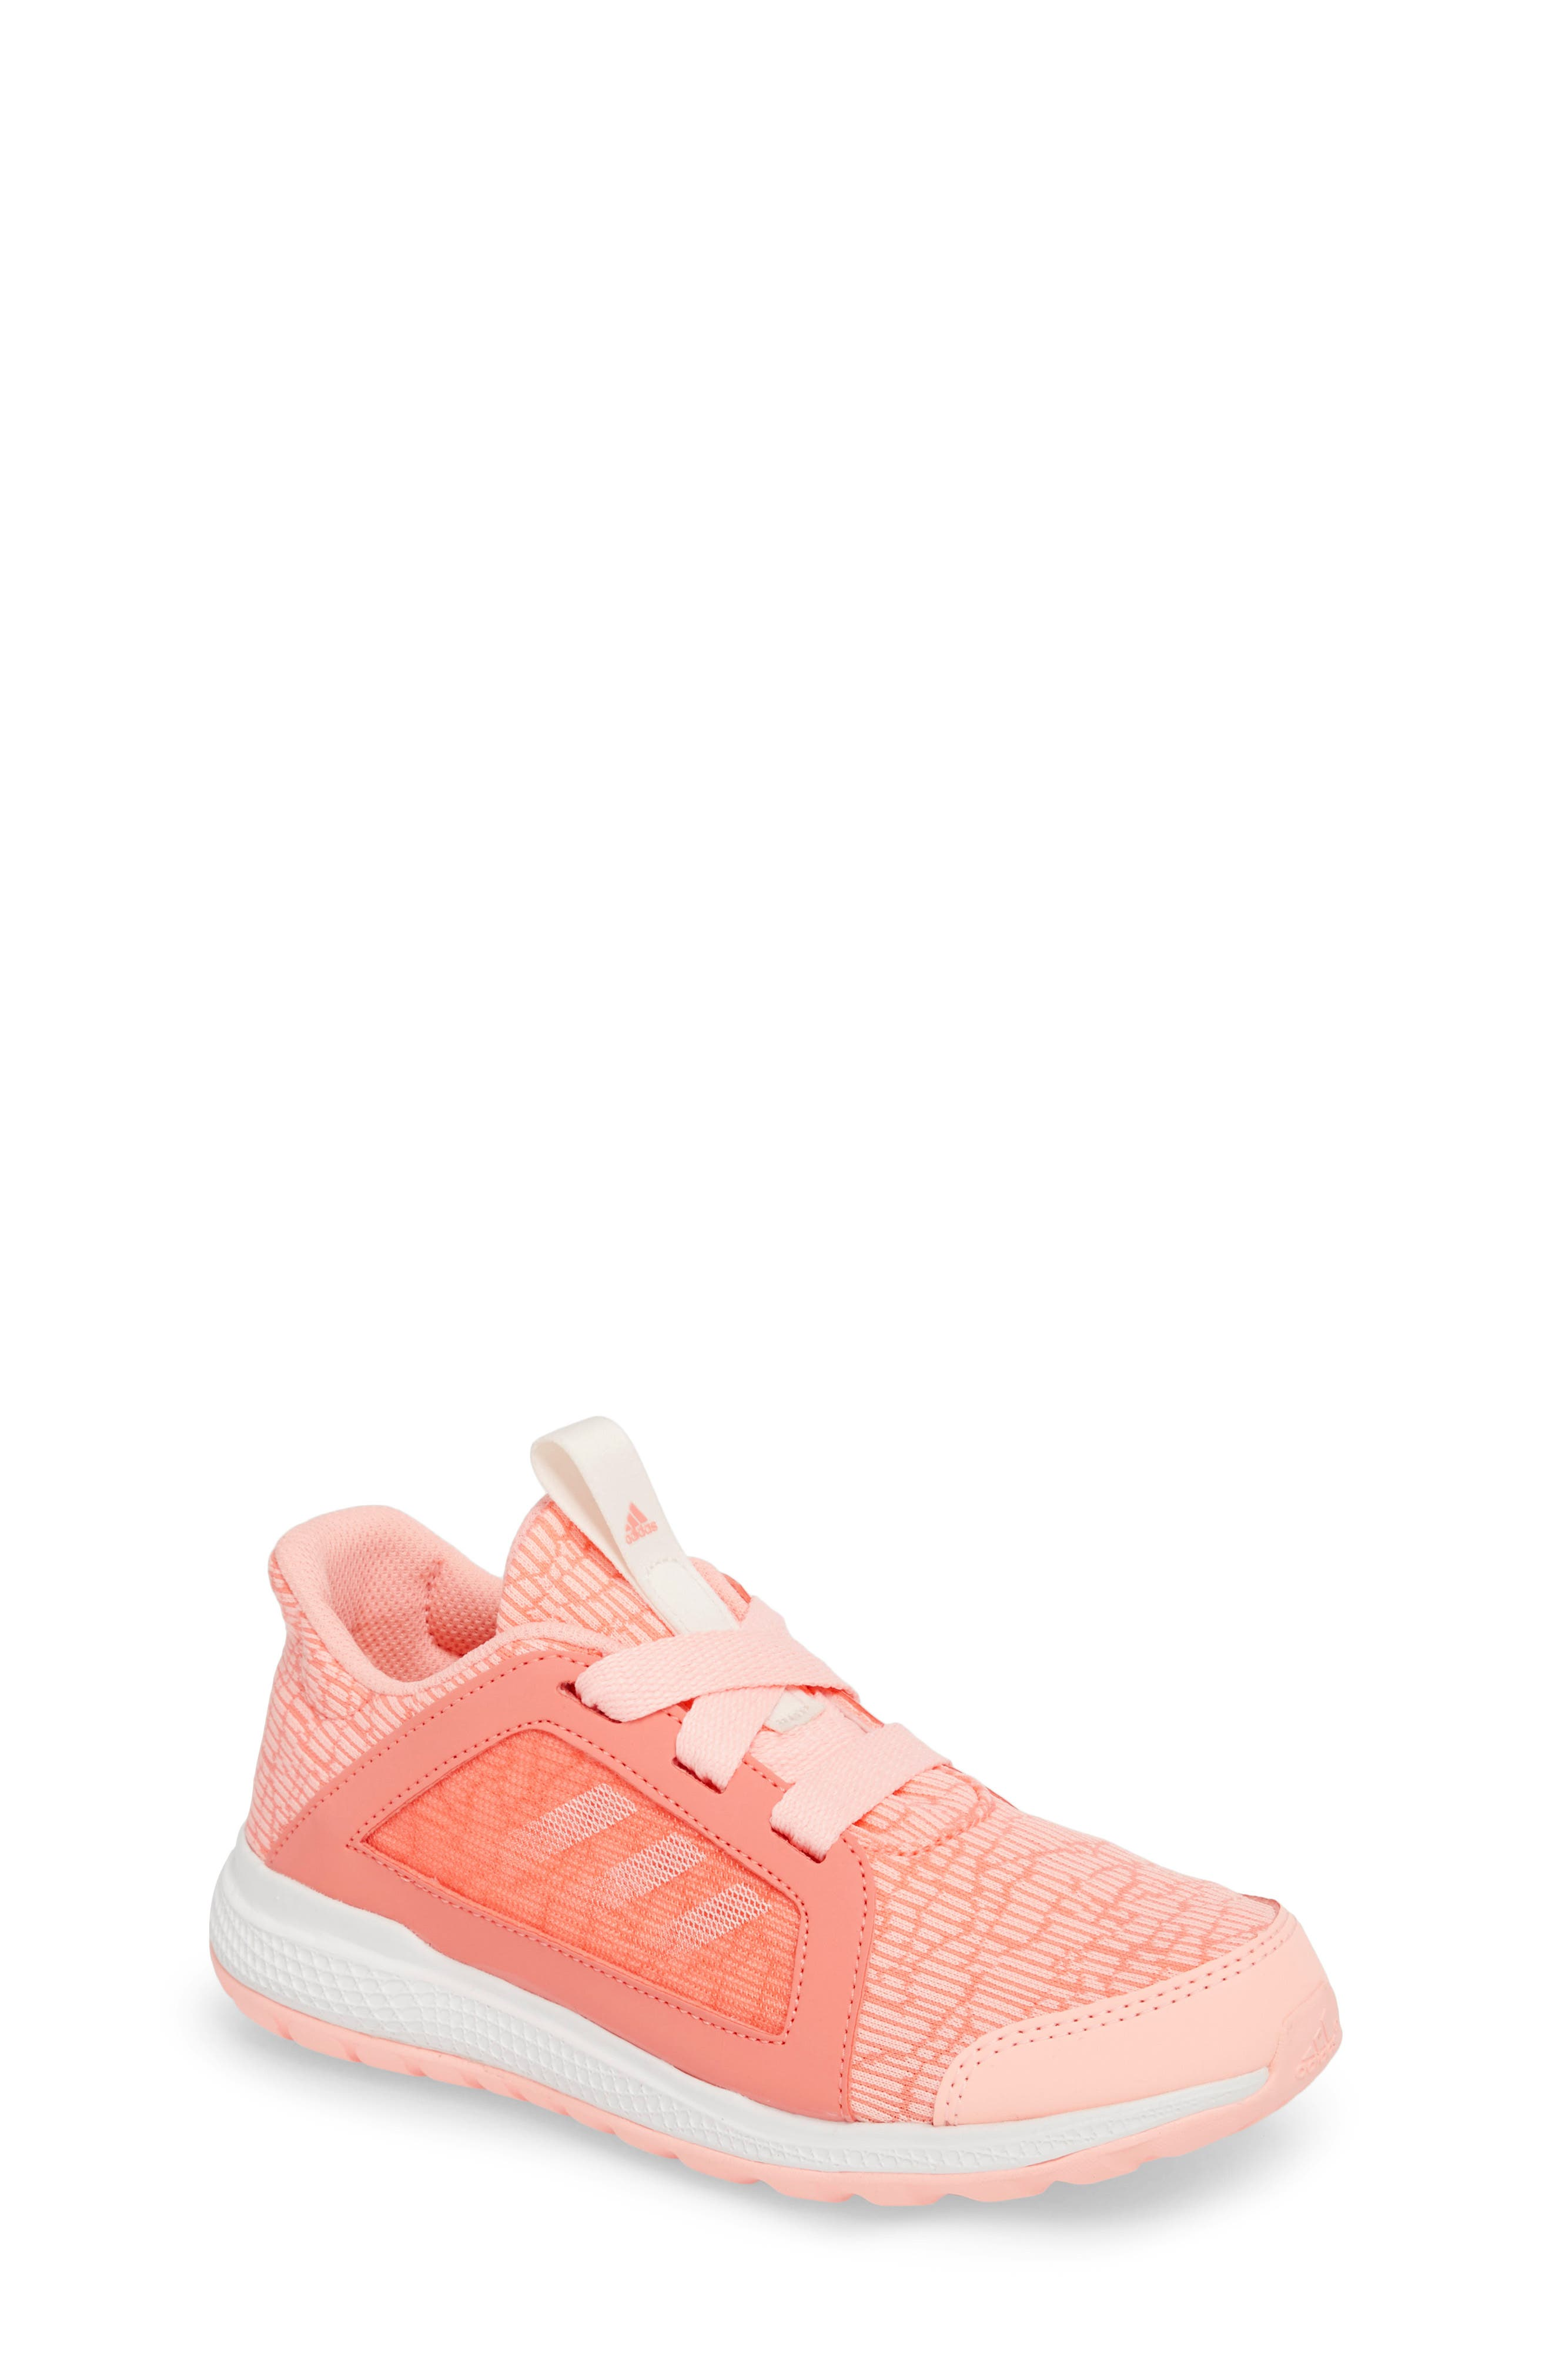 Edge Lux Running Shoe,                         Main,                         color, Chalk Coral/ White/ Orange